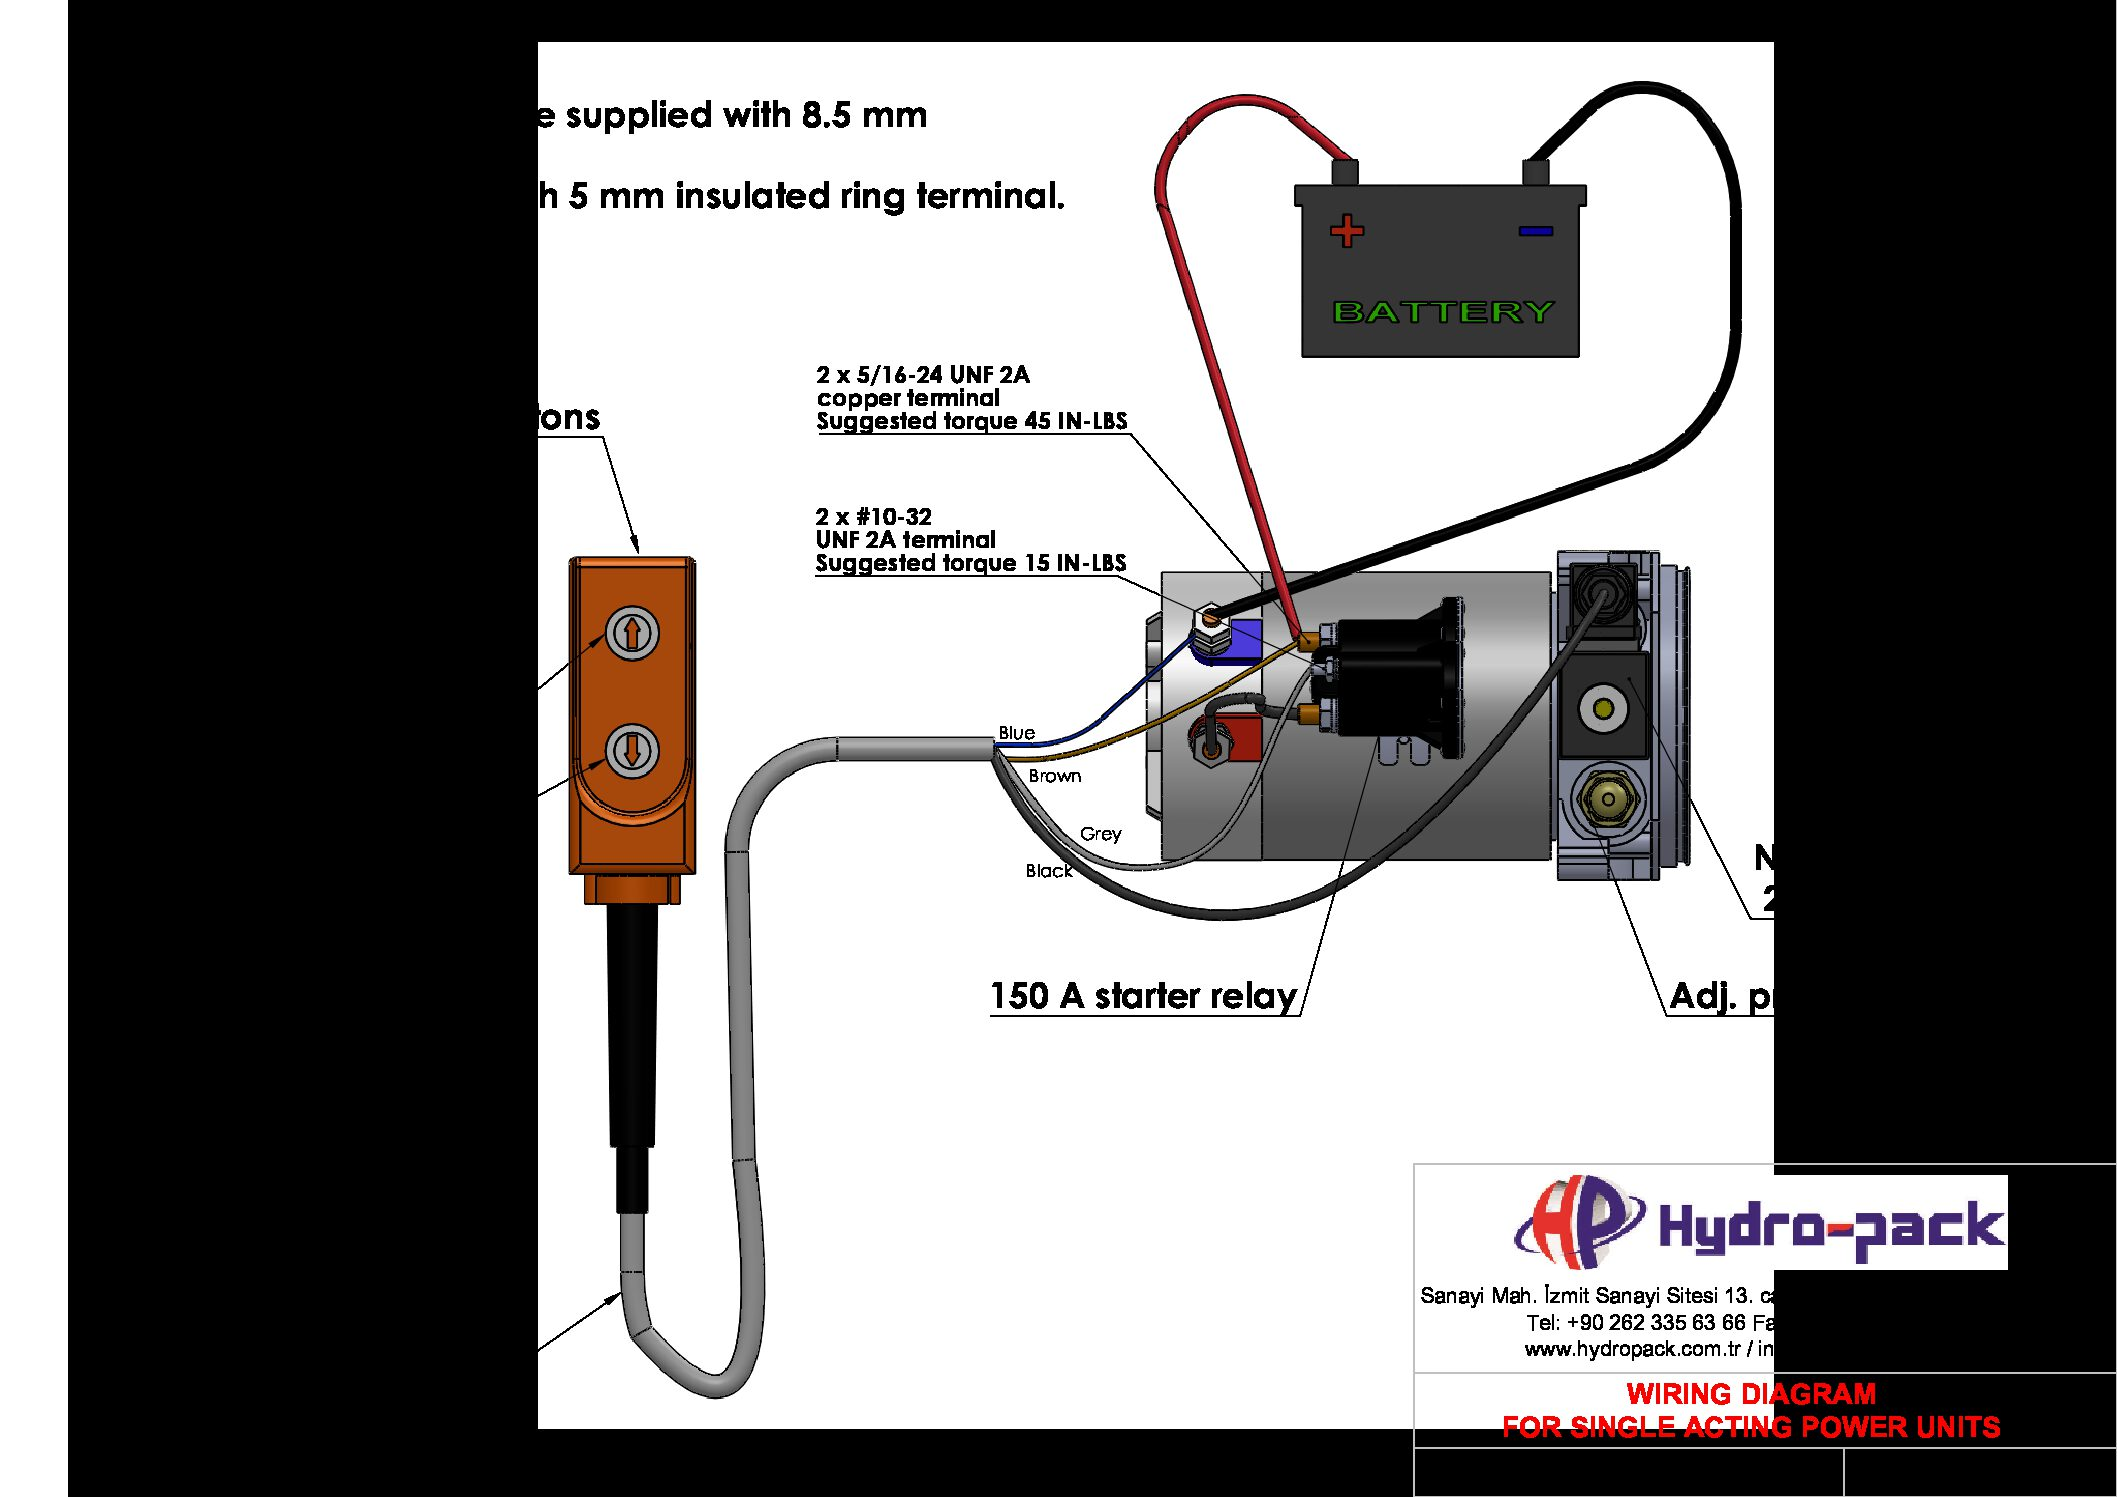 DD.054 ENG R1 Wiring Diagram for Single Acting Power Units  pdf